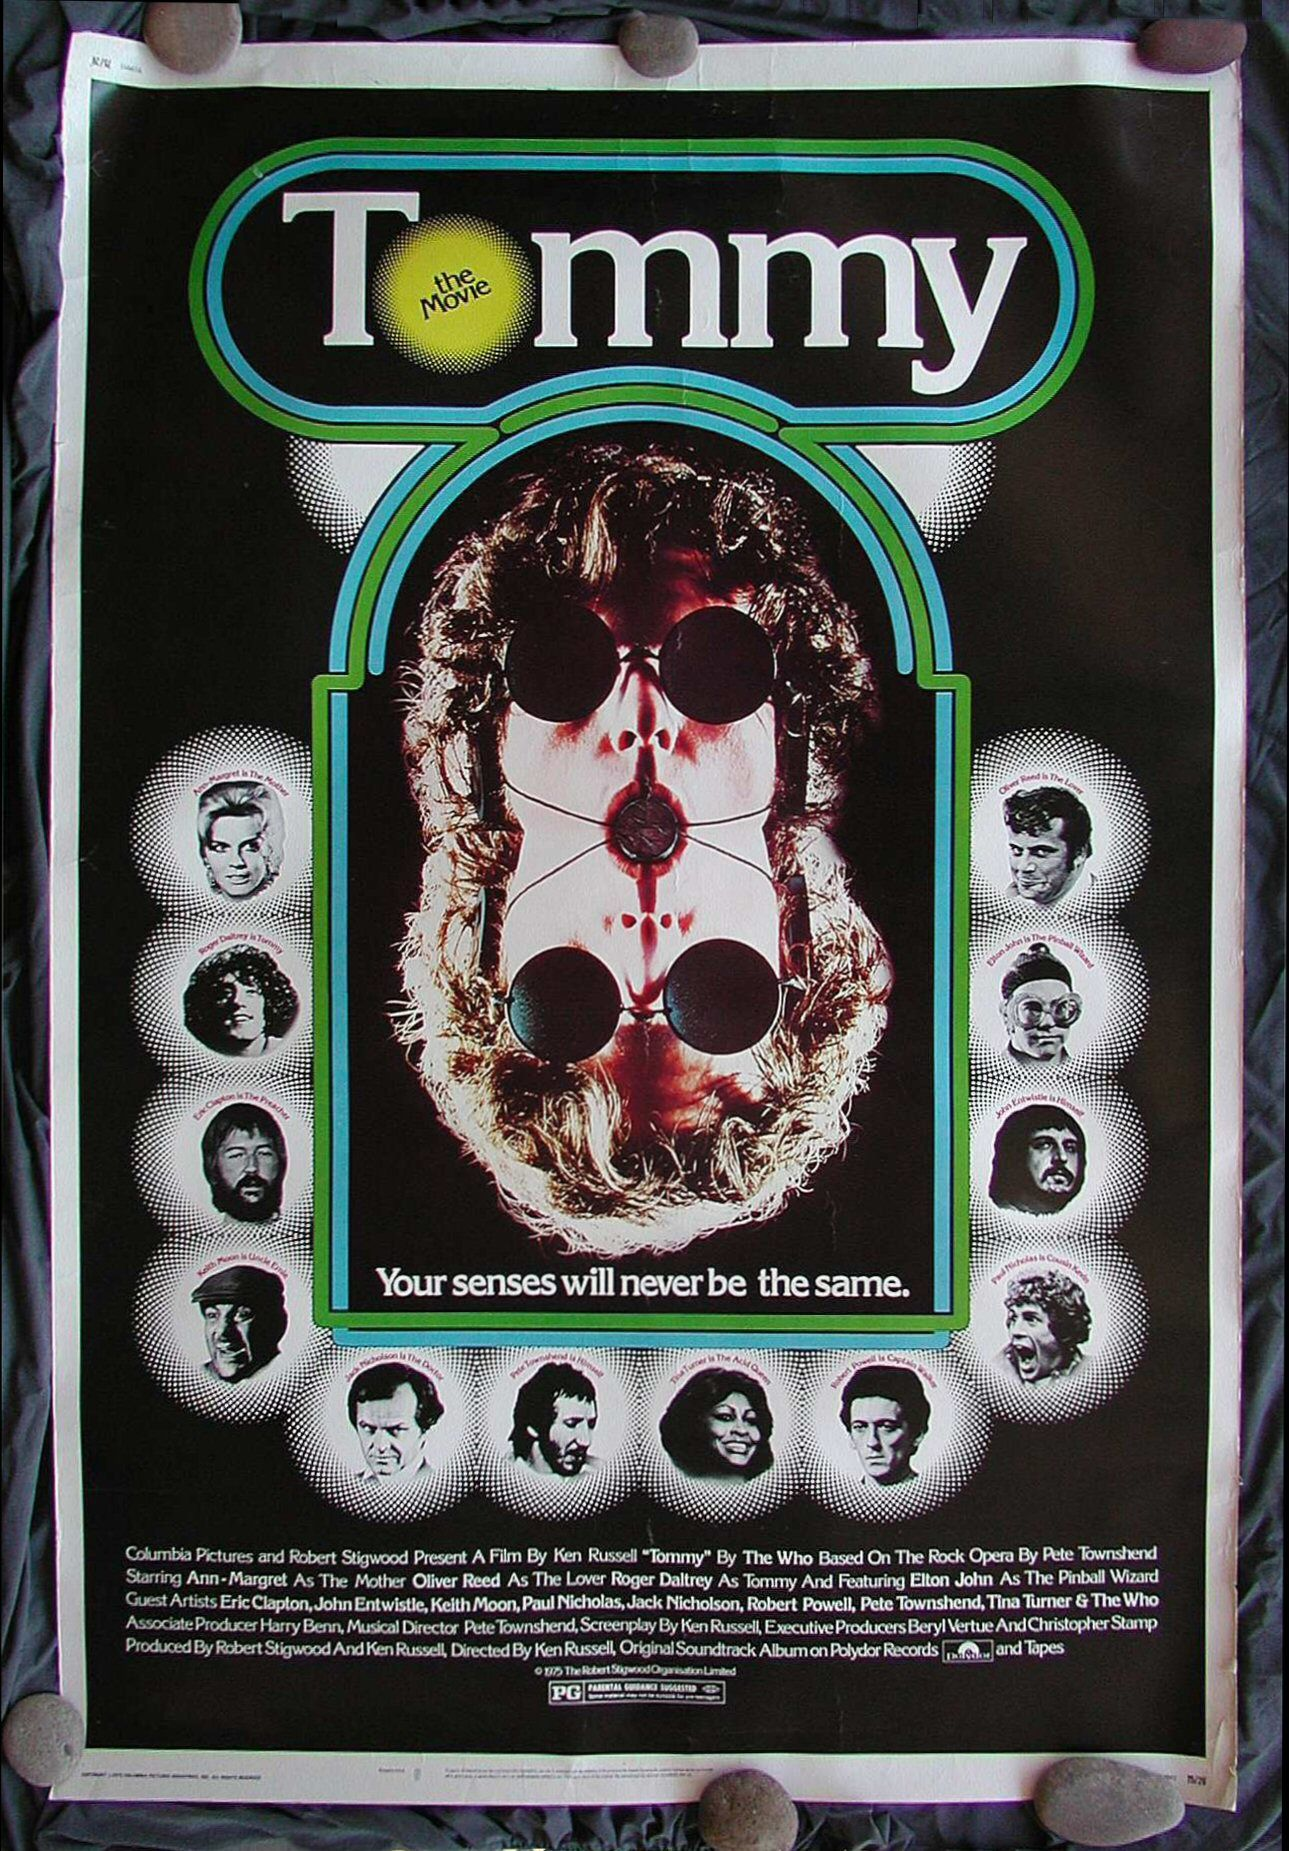 Tommy Cinemasterpieces 40x60 Original Rock Music Movie Poster 1975 The Who Tom Movie Posters Rock Opera Oliver Reed